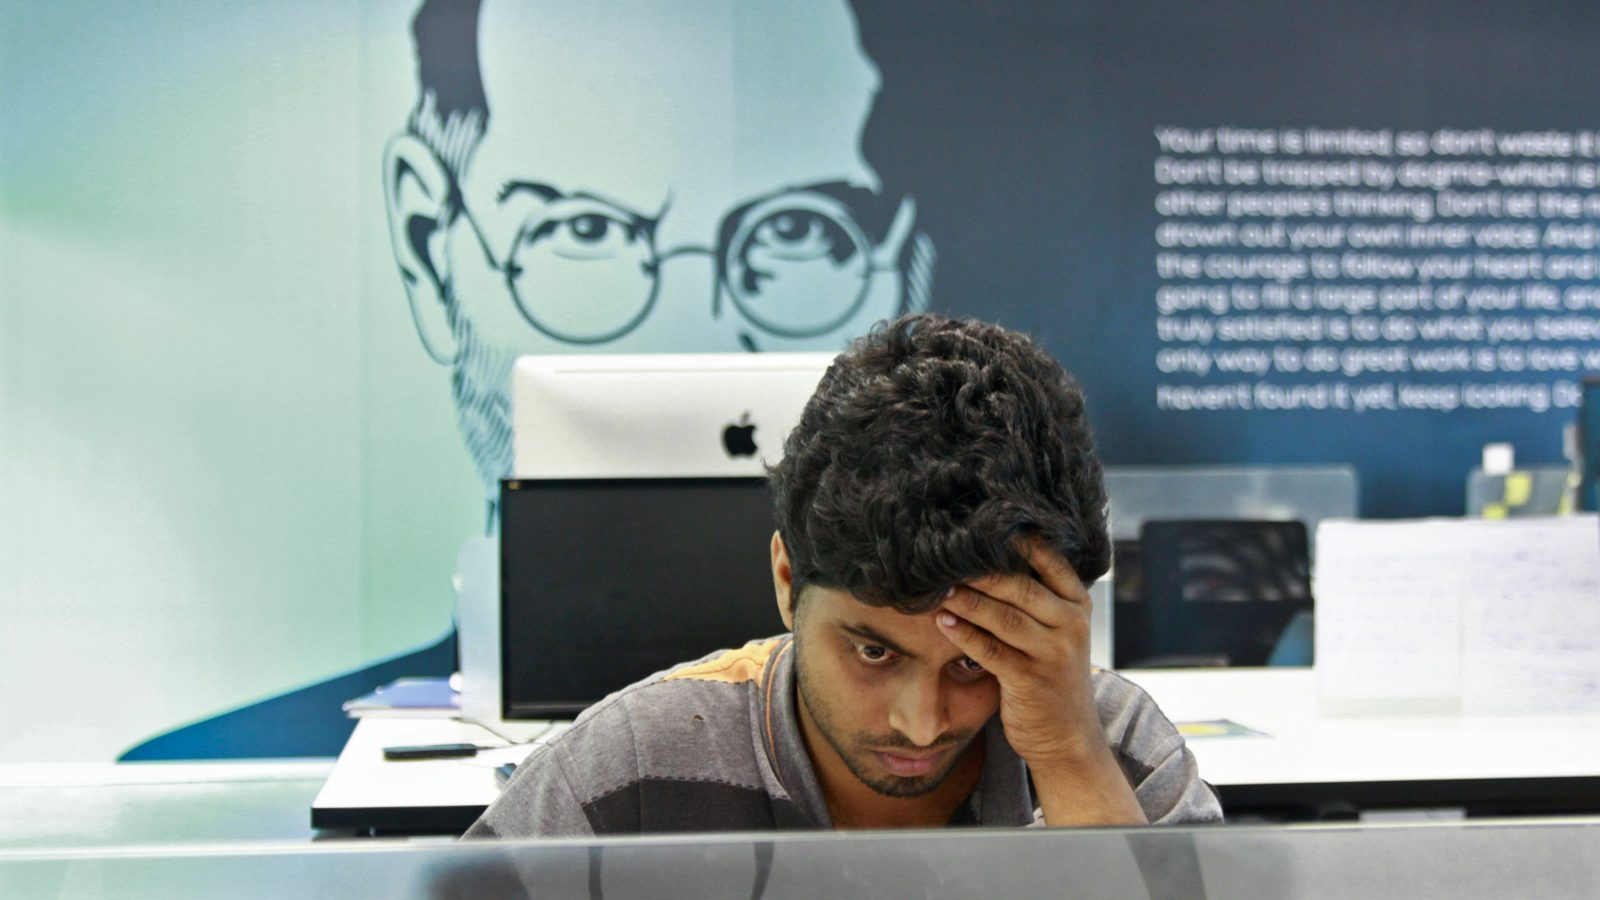 An employee works on a computer terminal against the backdrop of a picture of late Apple co-founder Steve Jobs at the Start-up Village in Kinfra High Tech Park in the southern Indian city of Kochi October 13, 2012. Three decades after Infosys, India's second-largest software service provider, was founded by middle-class engineers, the country has failed to create an enabling environment for first-generation entrepreneurs. Startup Village wants to break the logjam by helping engineers develop 1,000 Internet and mobile companies in the next 10 years. It provides its members with office space, guidance and a chance to hobnob with the stars of the tech industry. But critics say this may not even be the beginning of a game-changer unless India deals with a host of other impediments - from red tape to a lack of innovation and a dearth of investors - that are blocking entrepreneurship in Asia's third-largest economy. To match Feature INDIA-TECHVILLAGE/ Picture taken October 13, 2012. REUTERS/Sivaram V (INDIA - Tags: BUSINESS SCIENCE TECHNOLOGY EMPLOYMENT TPX IMAGES OF THE DAY) - RTR3B6DX